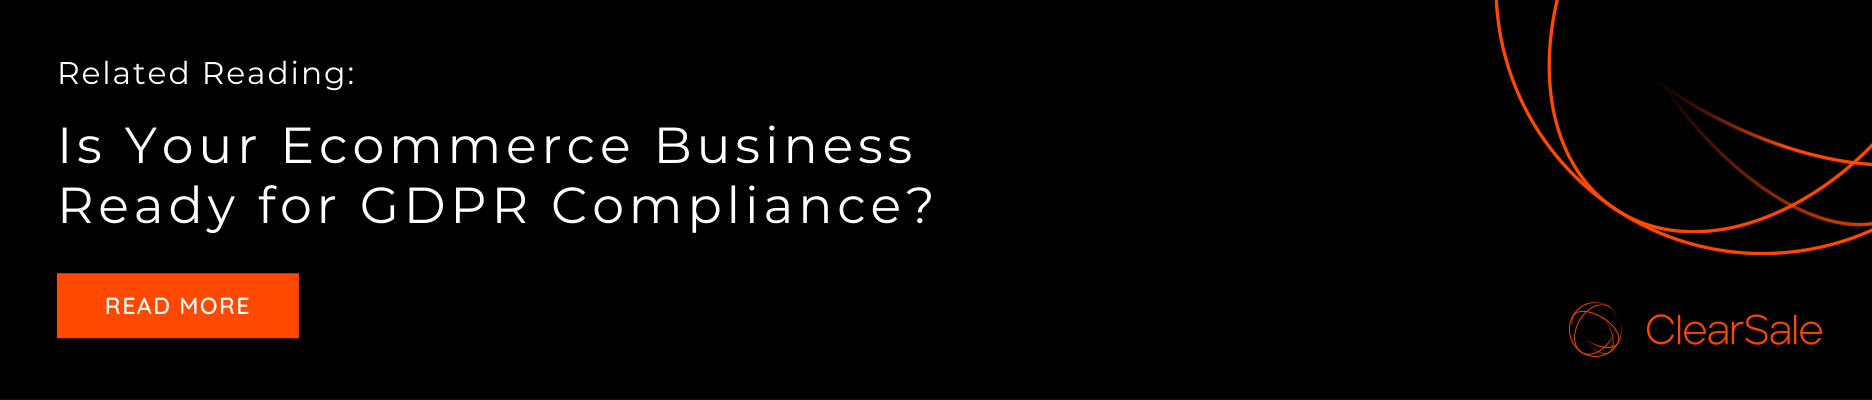 Related reading: Is Your Ecommerce Business Ready for GDPR Compliance?